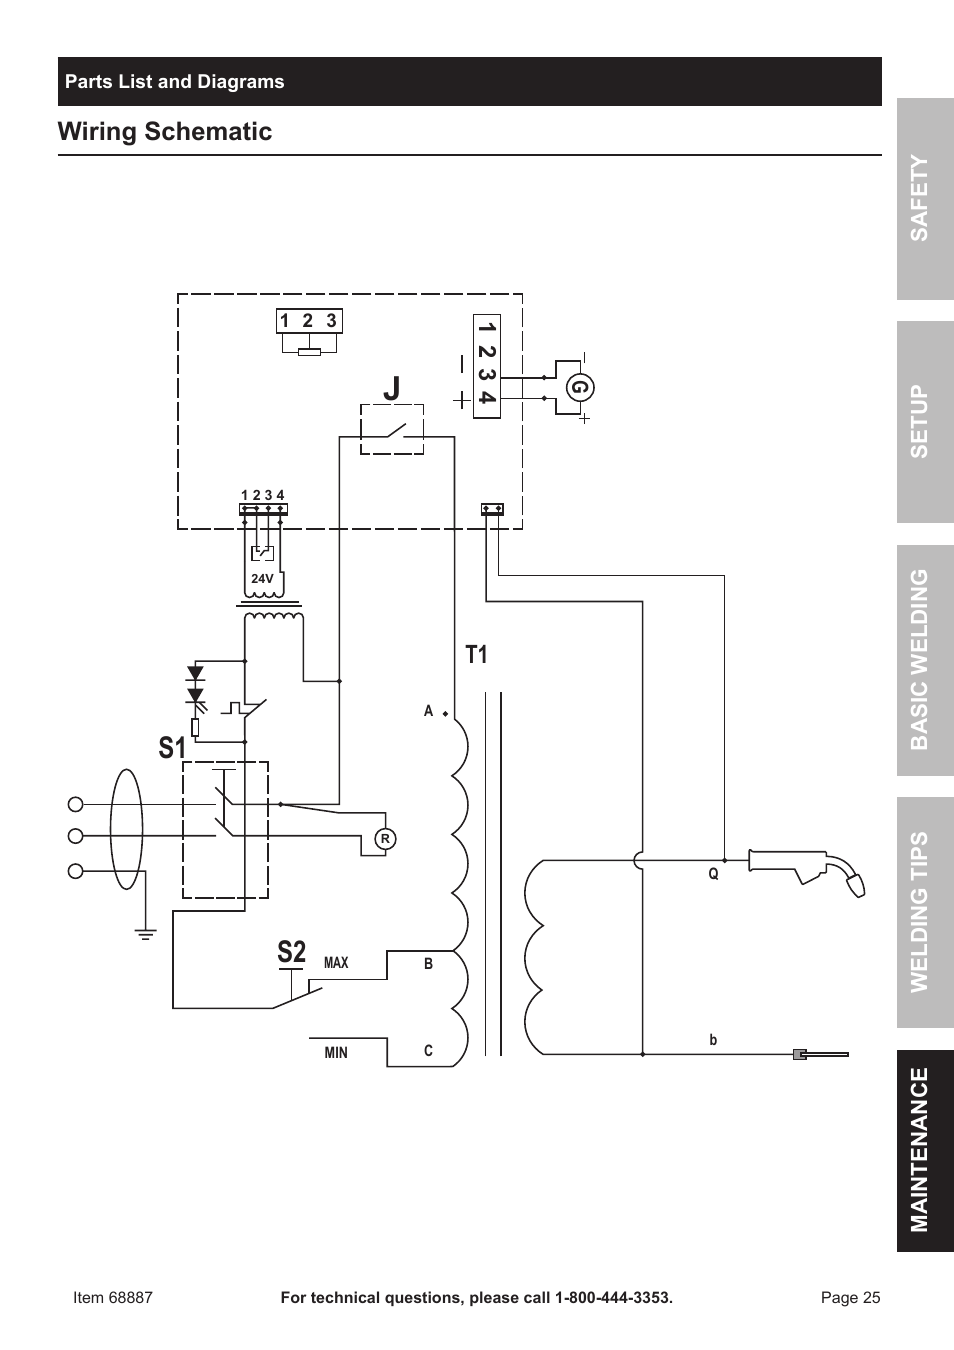 Welder Wiring Schematic Diagram Schematics S2 S1 Chicago Electric 90 Amp Flux Wire Connecting Tig Diagrams